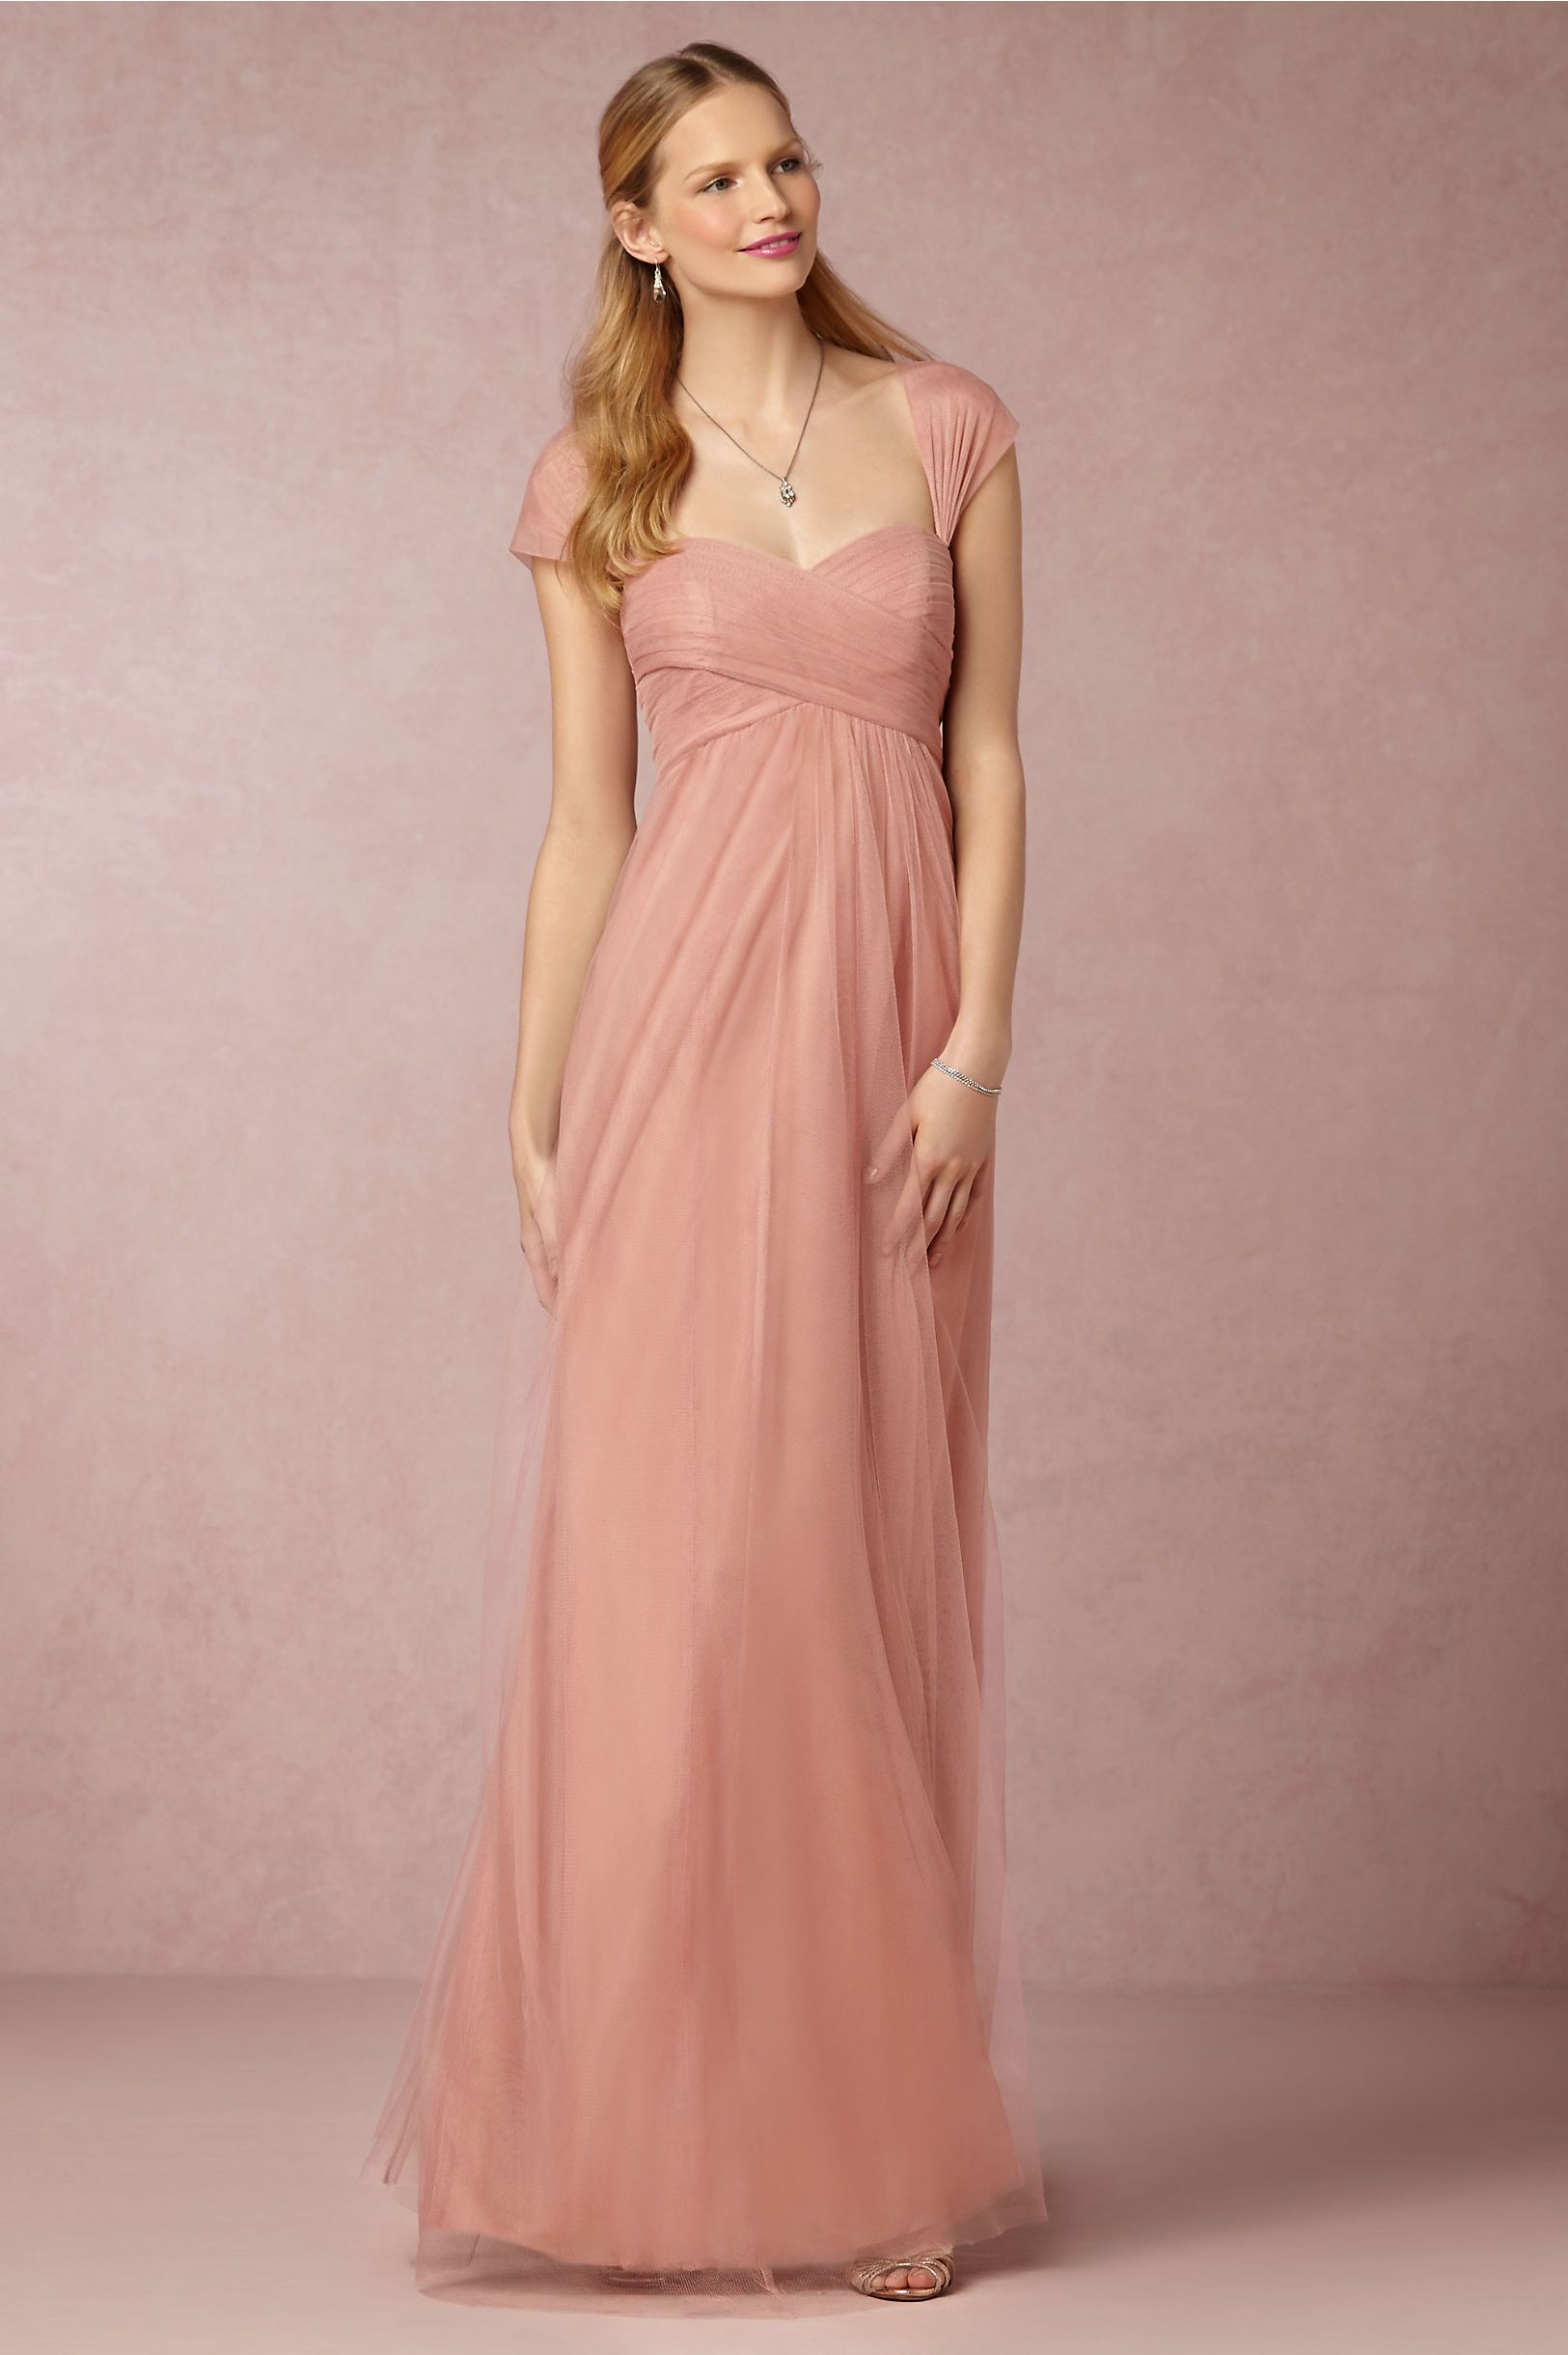 Willow Dress in Sale at BHLDN | Eunice\'s Dresses | Pinterest ...